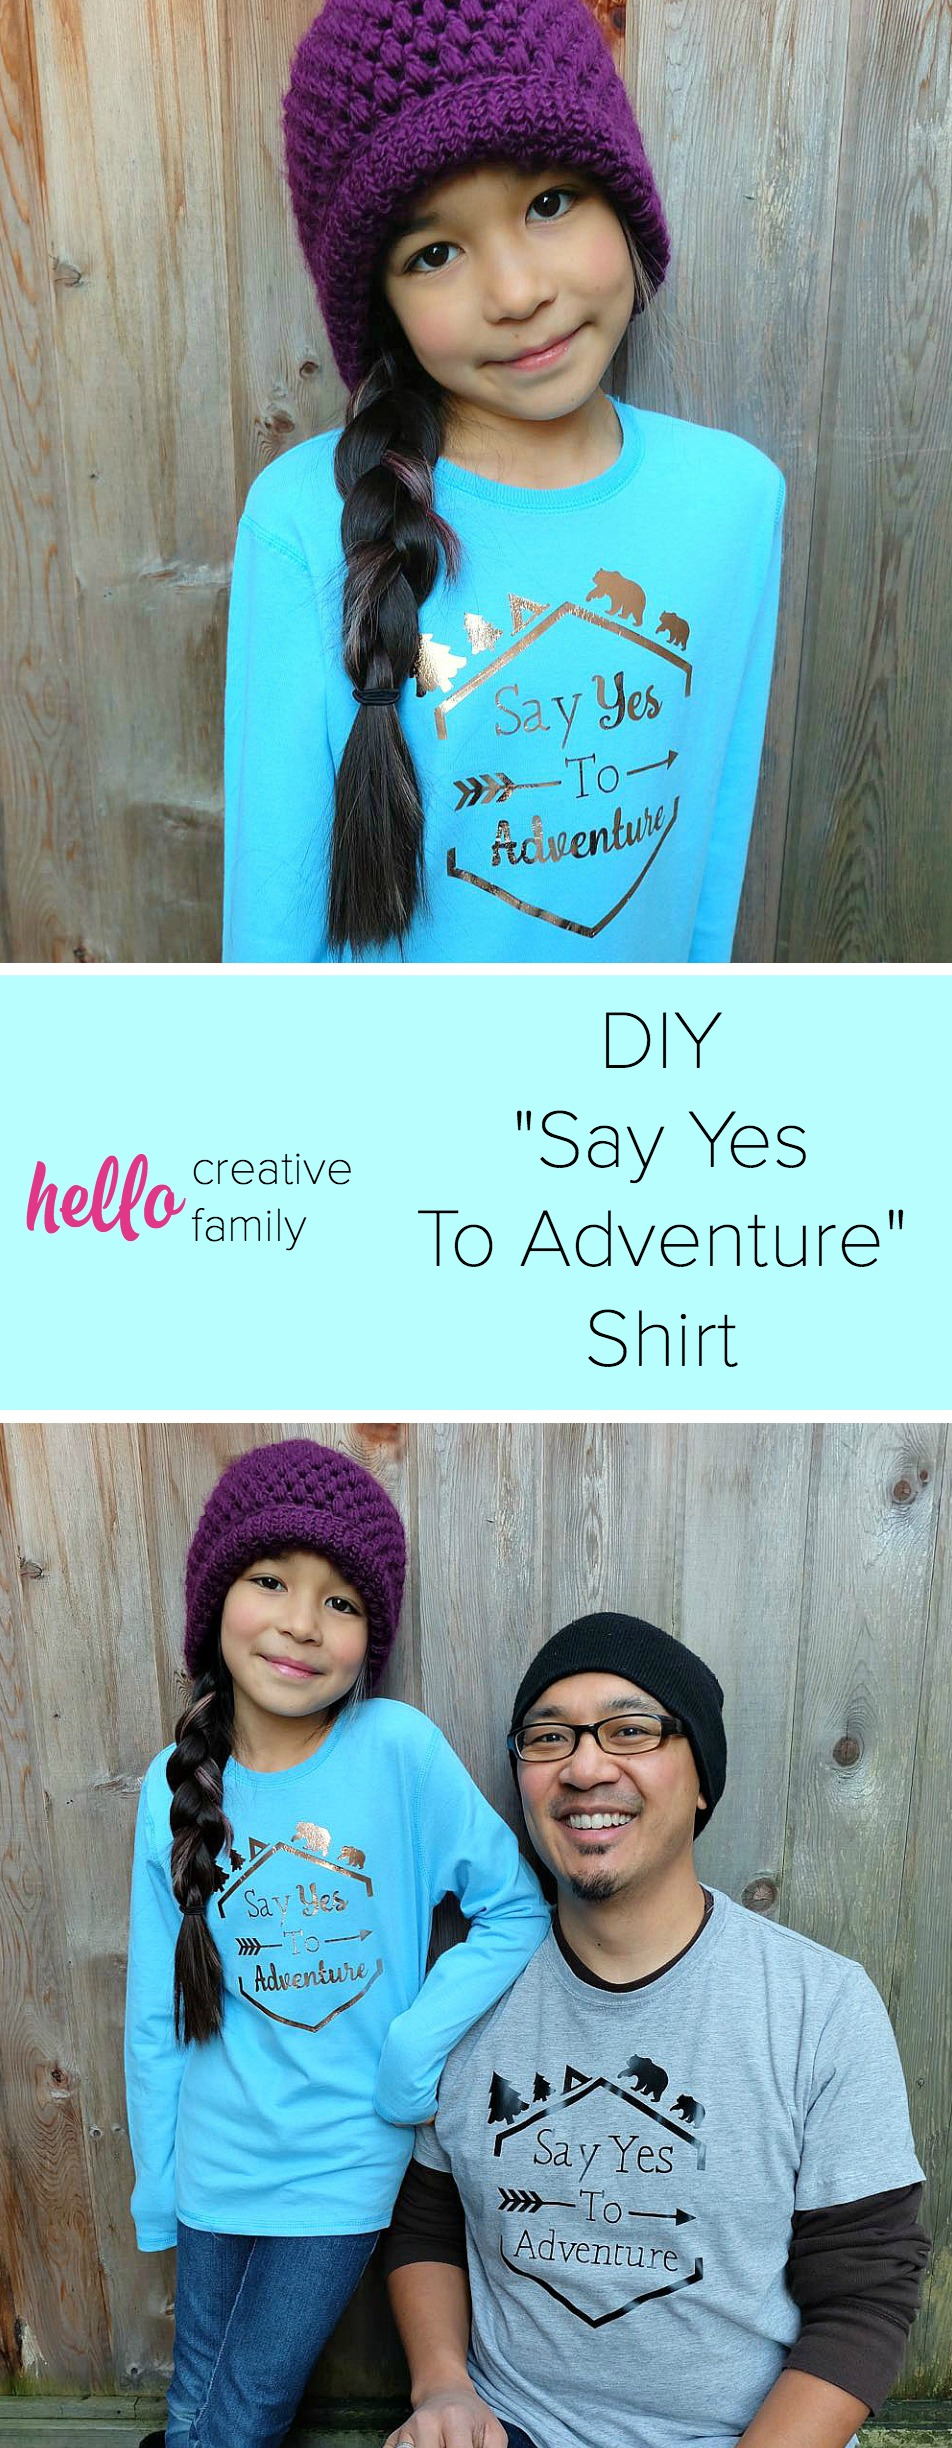 No matter what adventure life throws your way, say yes to adventure with this DIY shirt! Made using the Cricut, this post contains a free cut file and makes an adorable shirt for camping, hiking and other outdoor adventures!